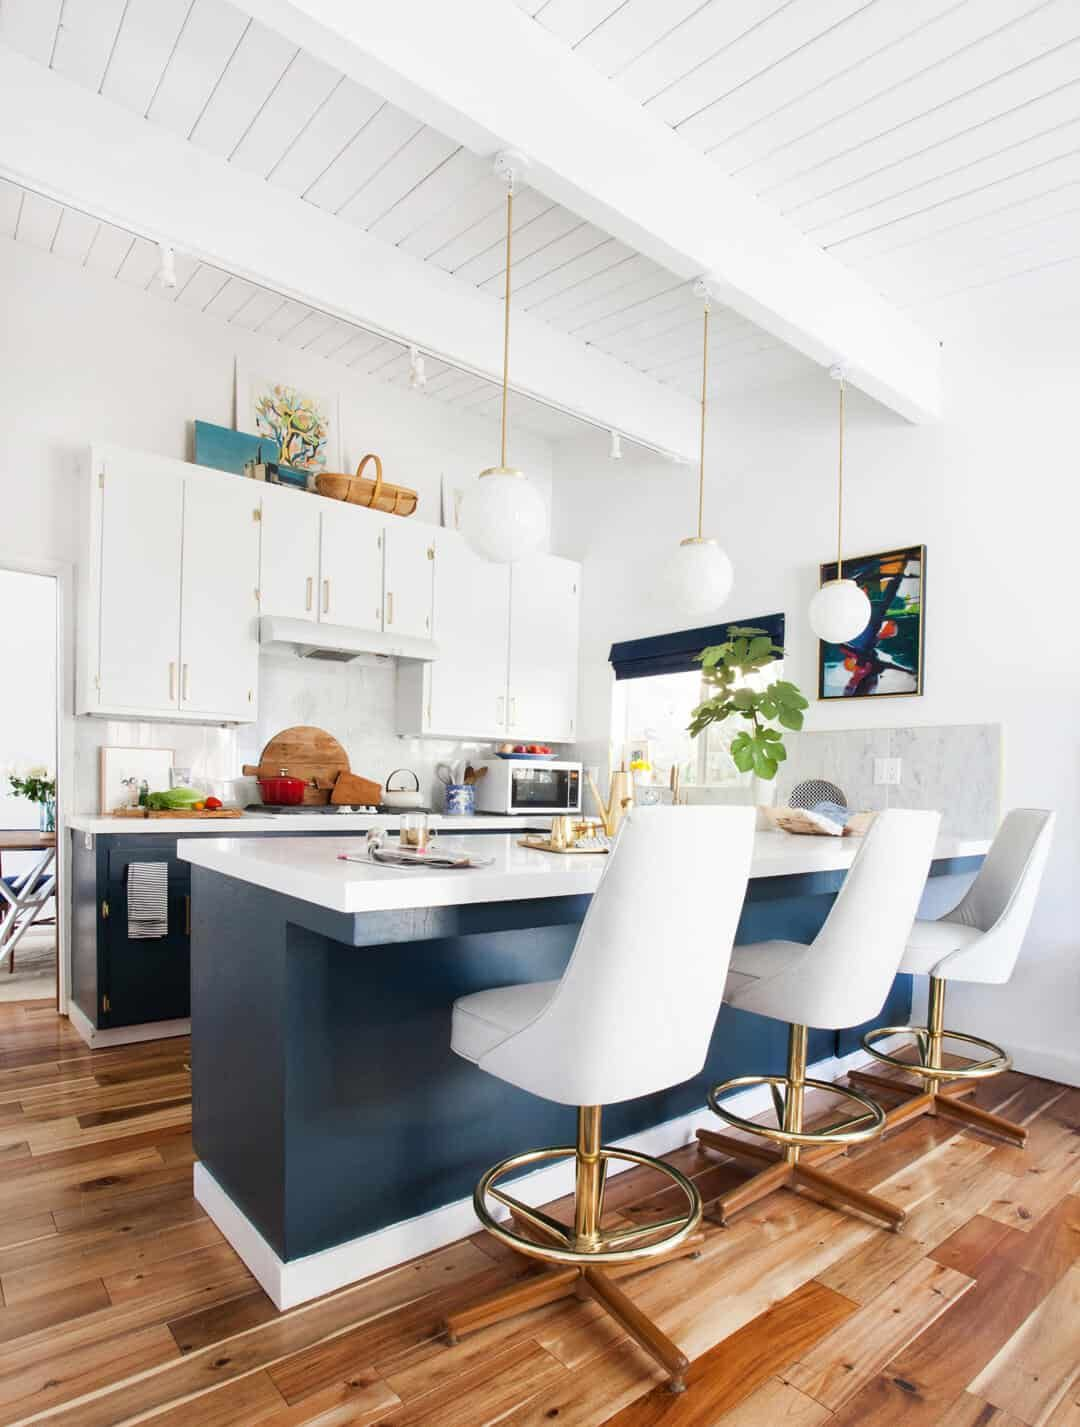 How to Decorate Above Kitchen Cabinets - 20 Ideas in ...